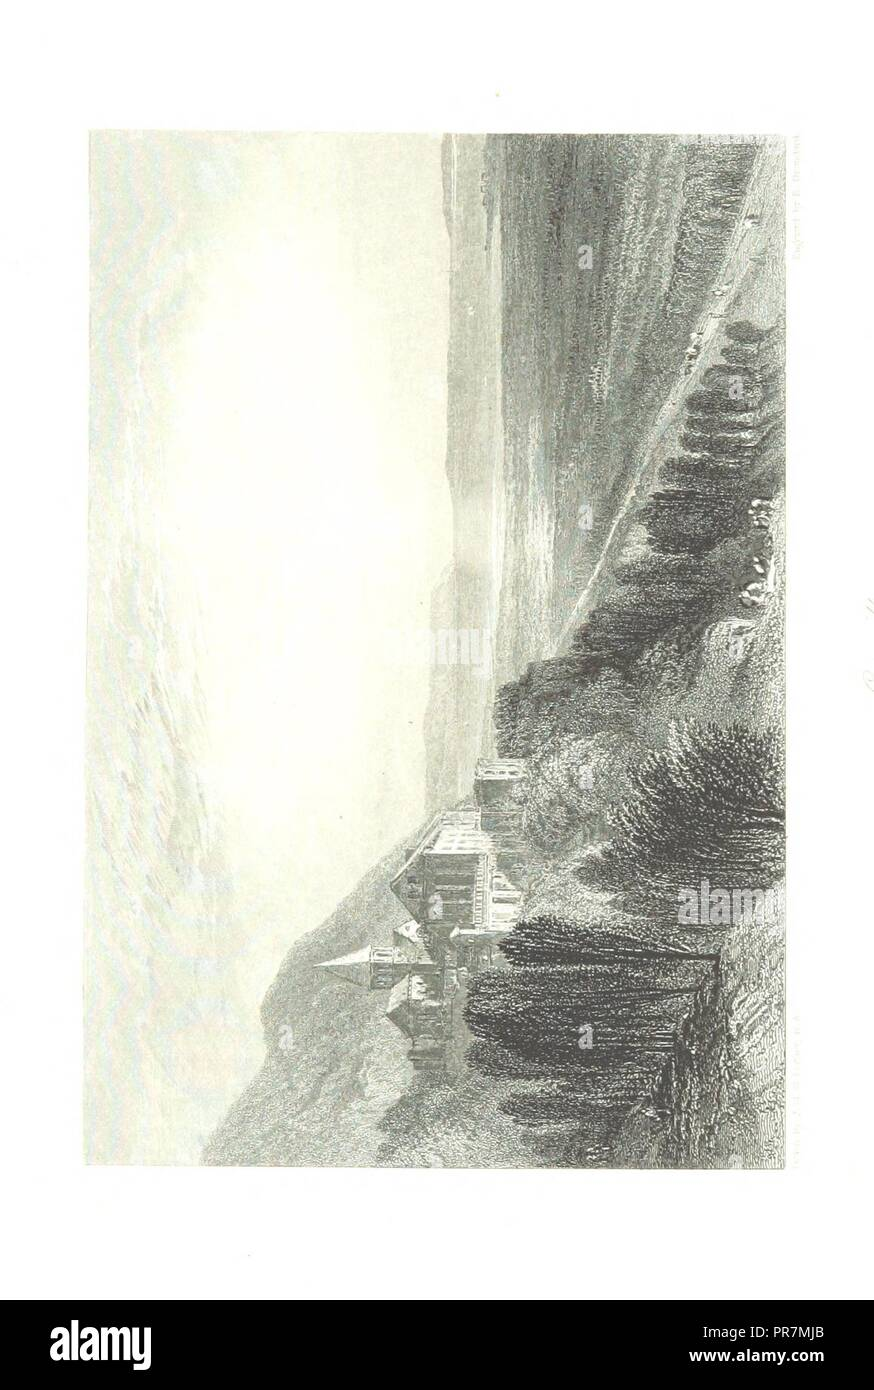 page 221 of 'Turner's Rivers of France, with an introduction by John Ruskin. A series of . steel engravings, . described by L. Ritchie. With a biography of the artists by A. A. Watts' . - Stock Image